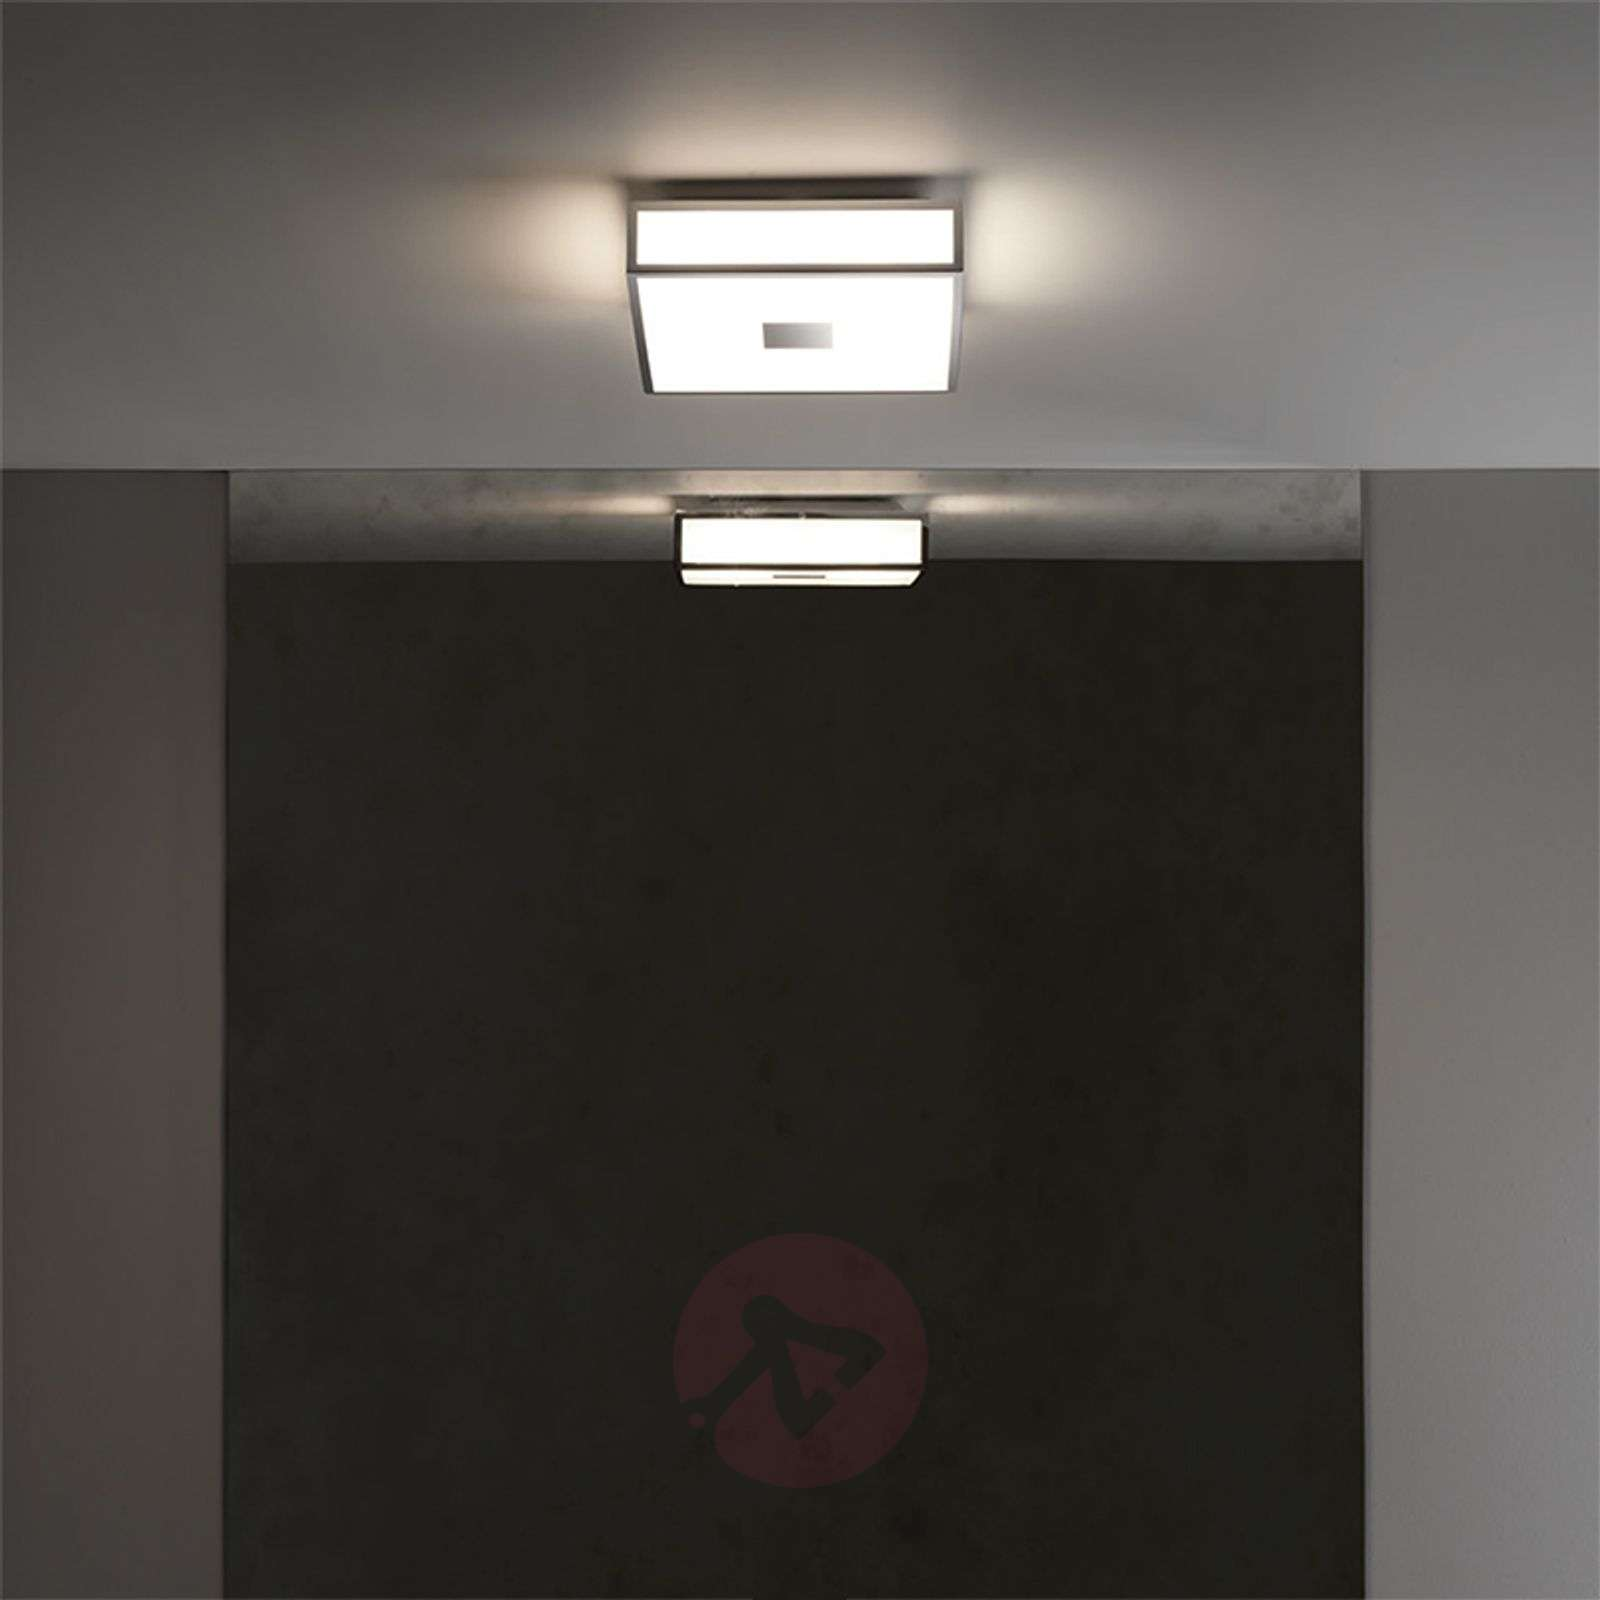 Plafonnier LED rectangulaire Mashiko avec IP44-1020550-01